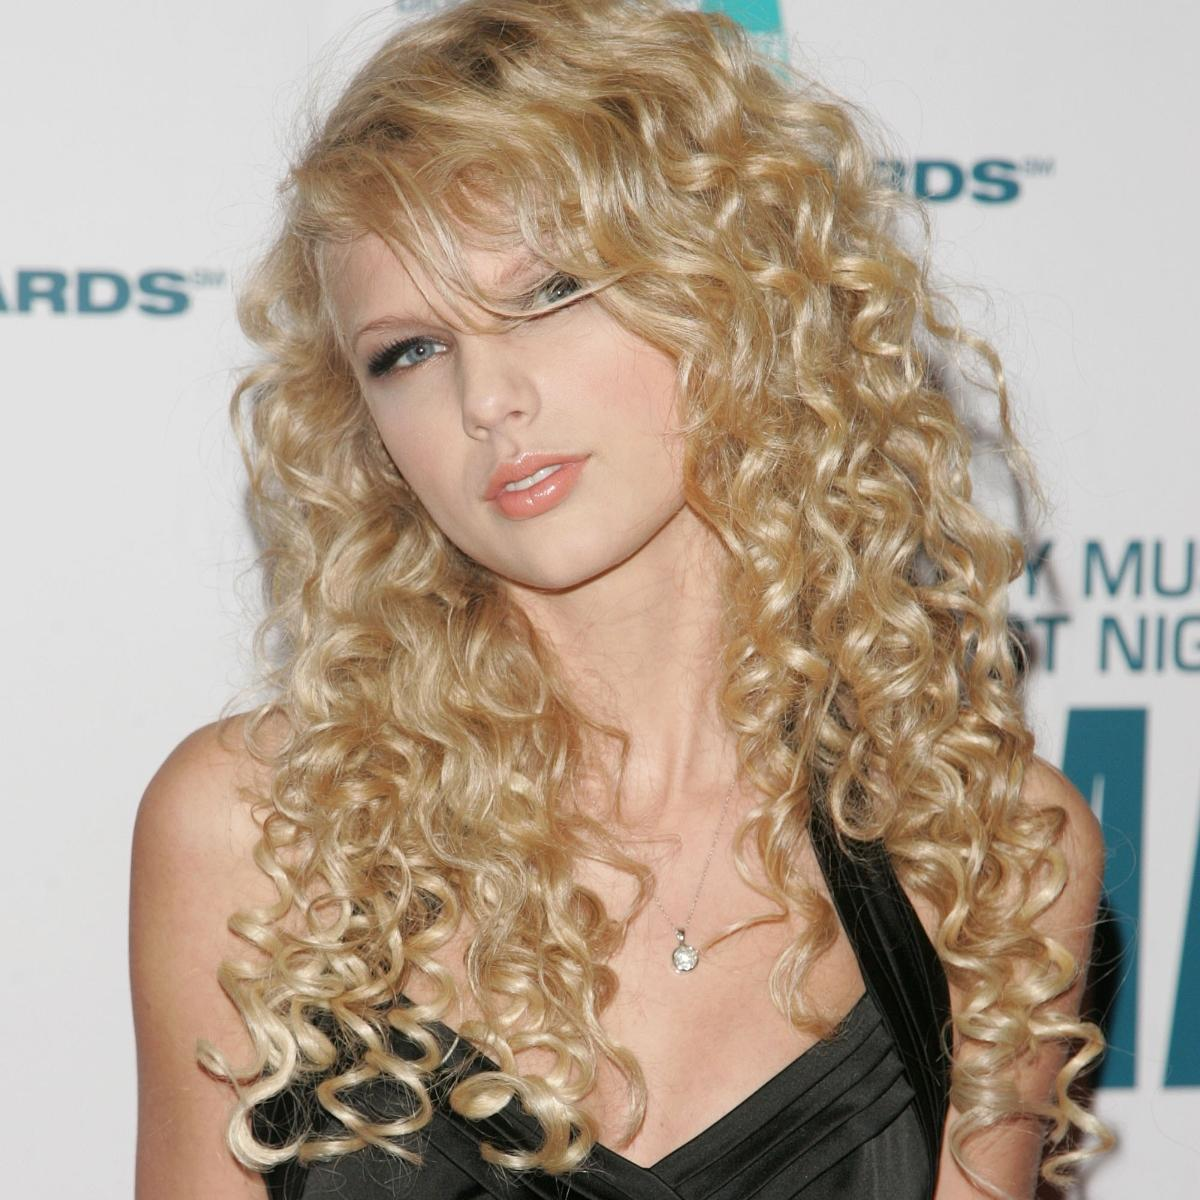 Taylor Swift Check Out The Singer S Throwback Photos When She Had Curly Hair